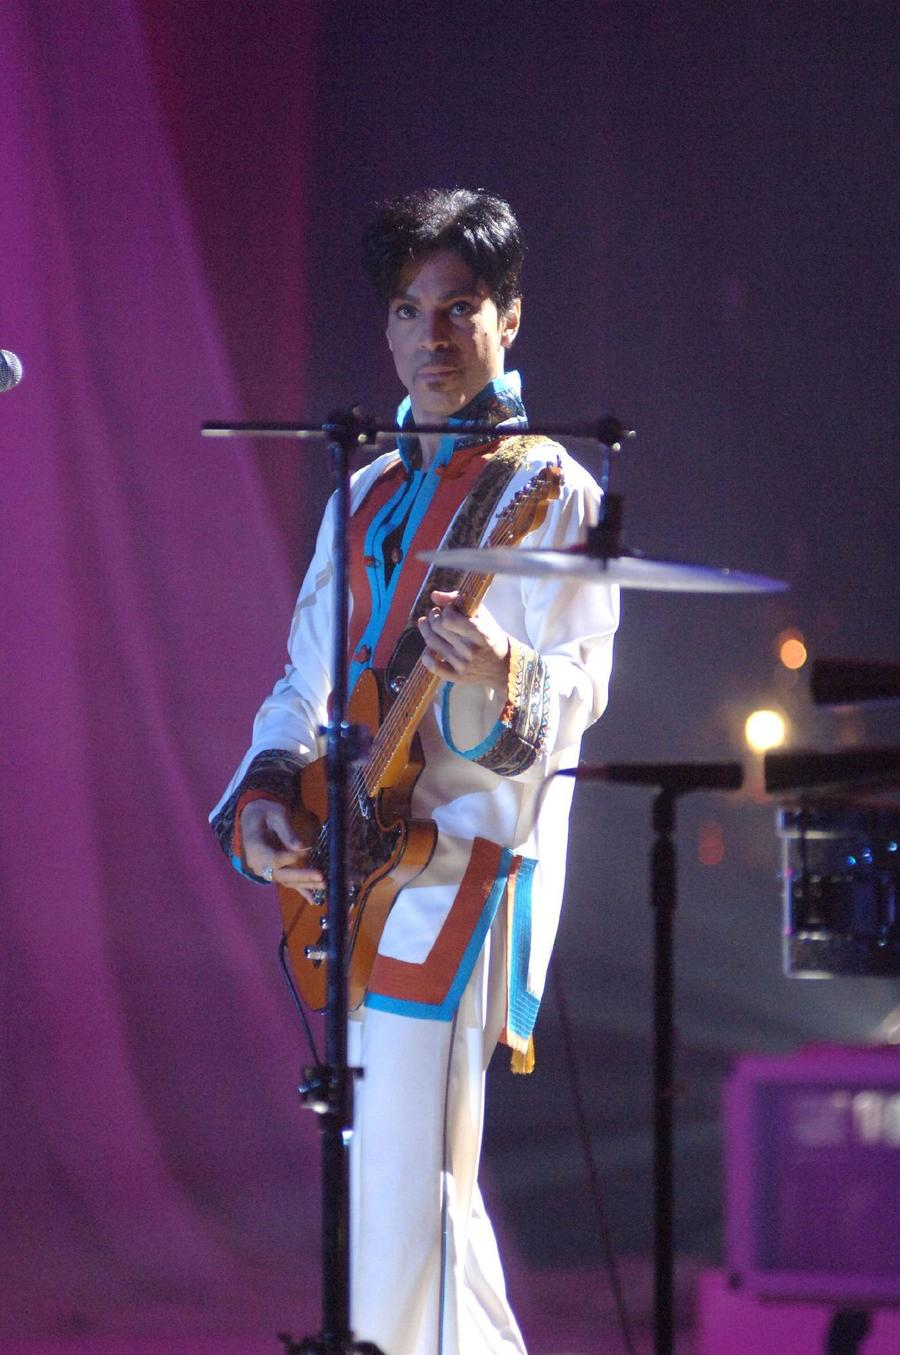 Prince Told Pals He Was 'Doing Fine' Days Before His Death